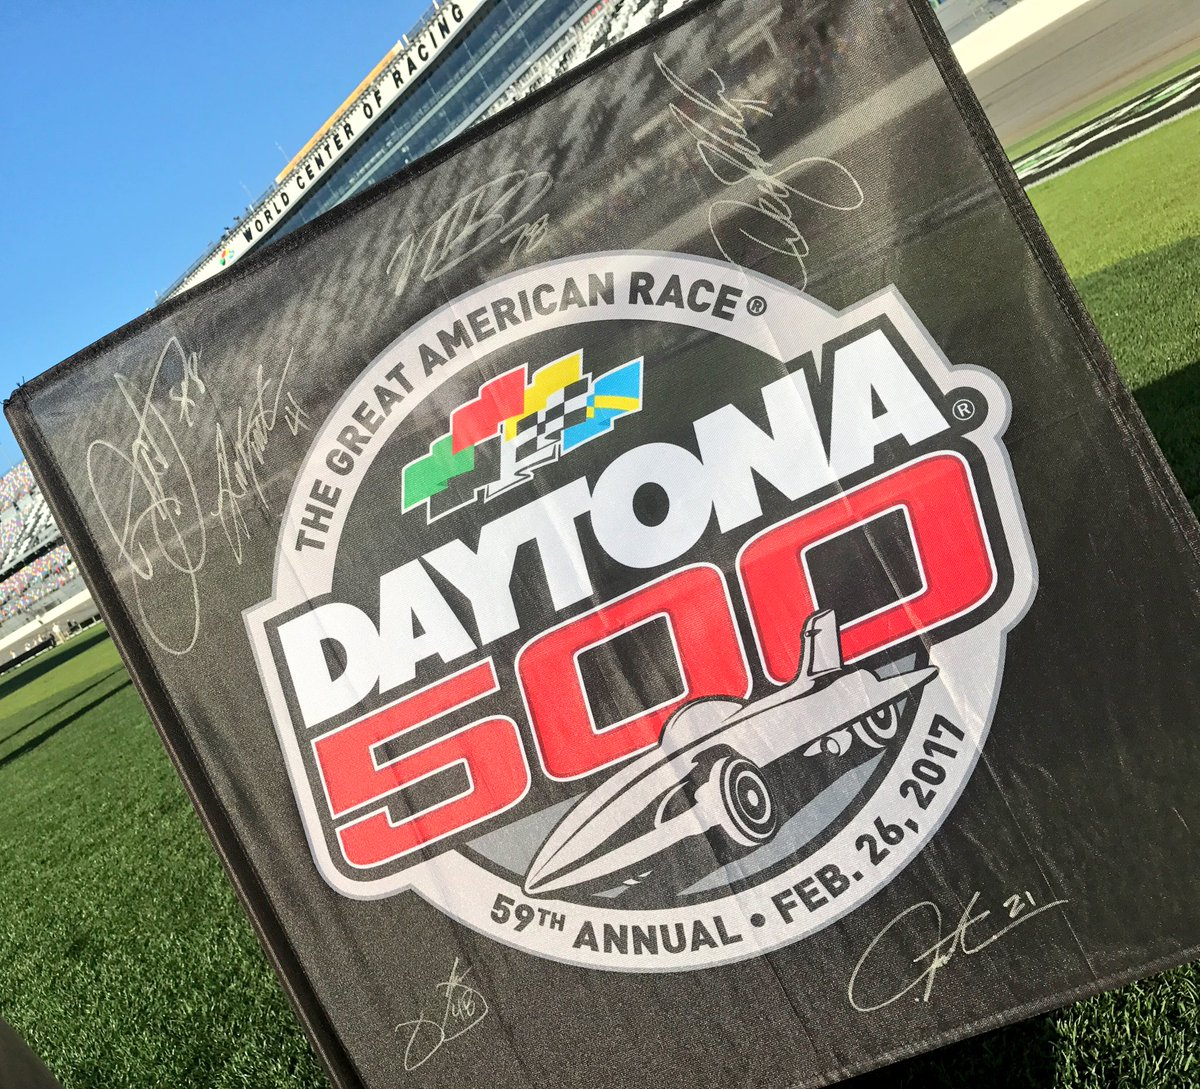 #ROADTODAYTONA500 has reached its final destination! RETWEET for your chance to win this signed #DAYTONA500 flag! Winner picked at 8pm ET!